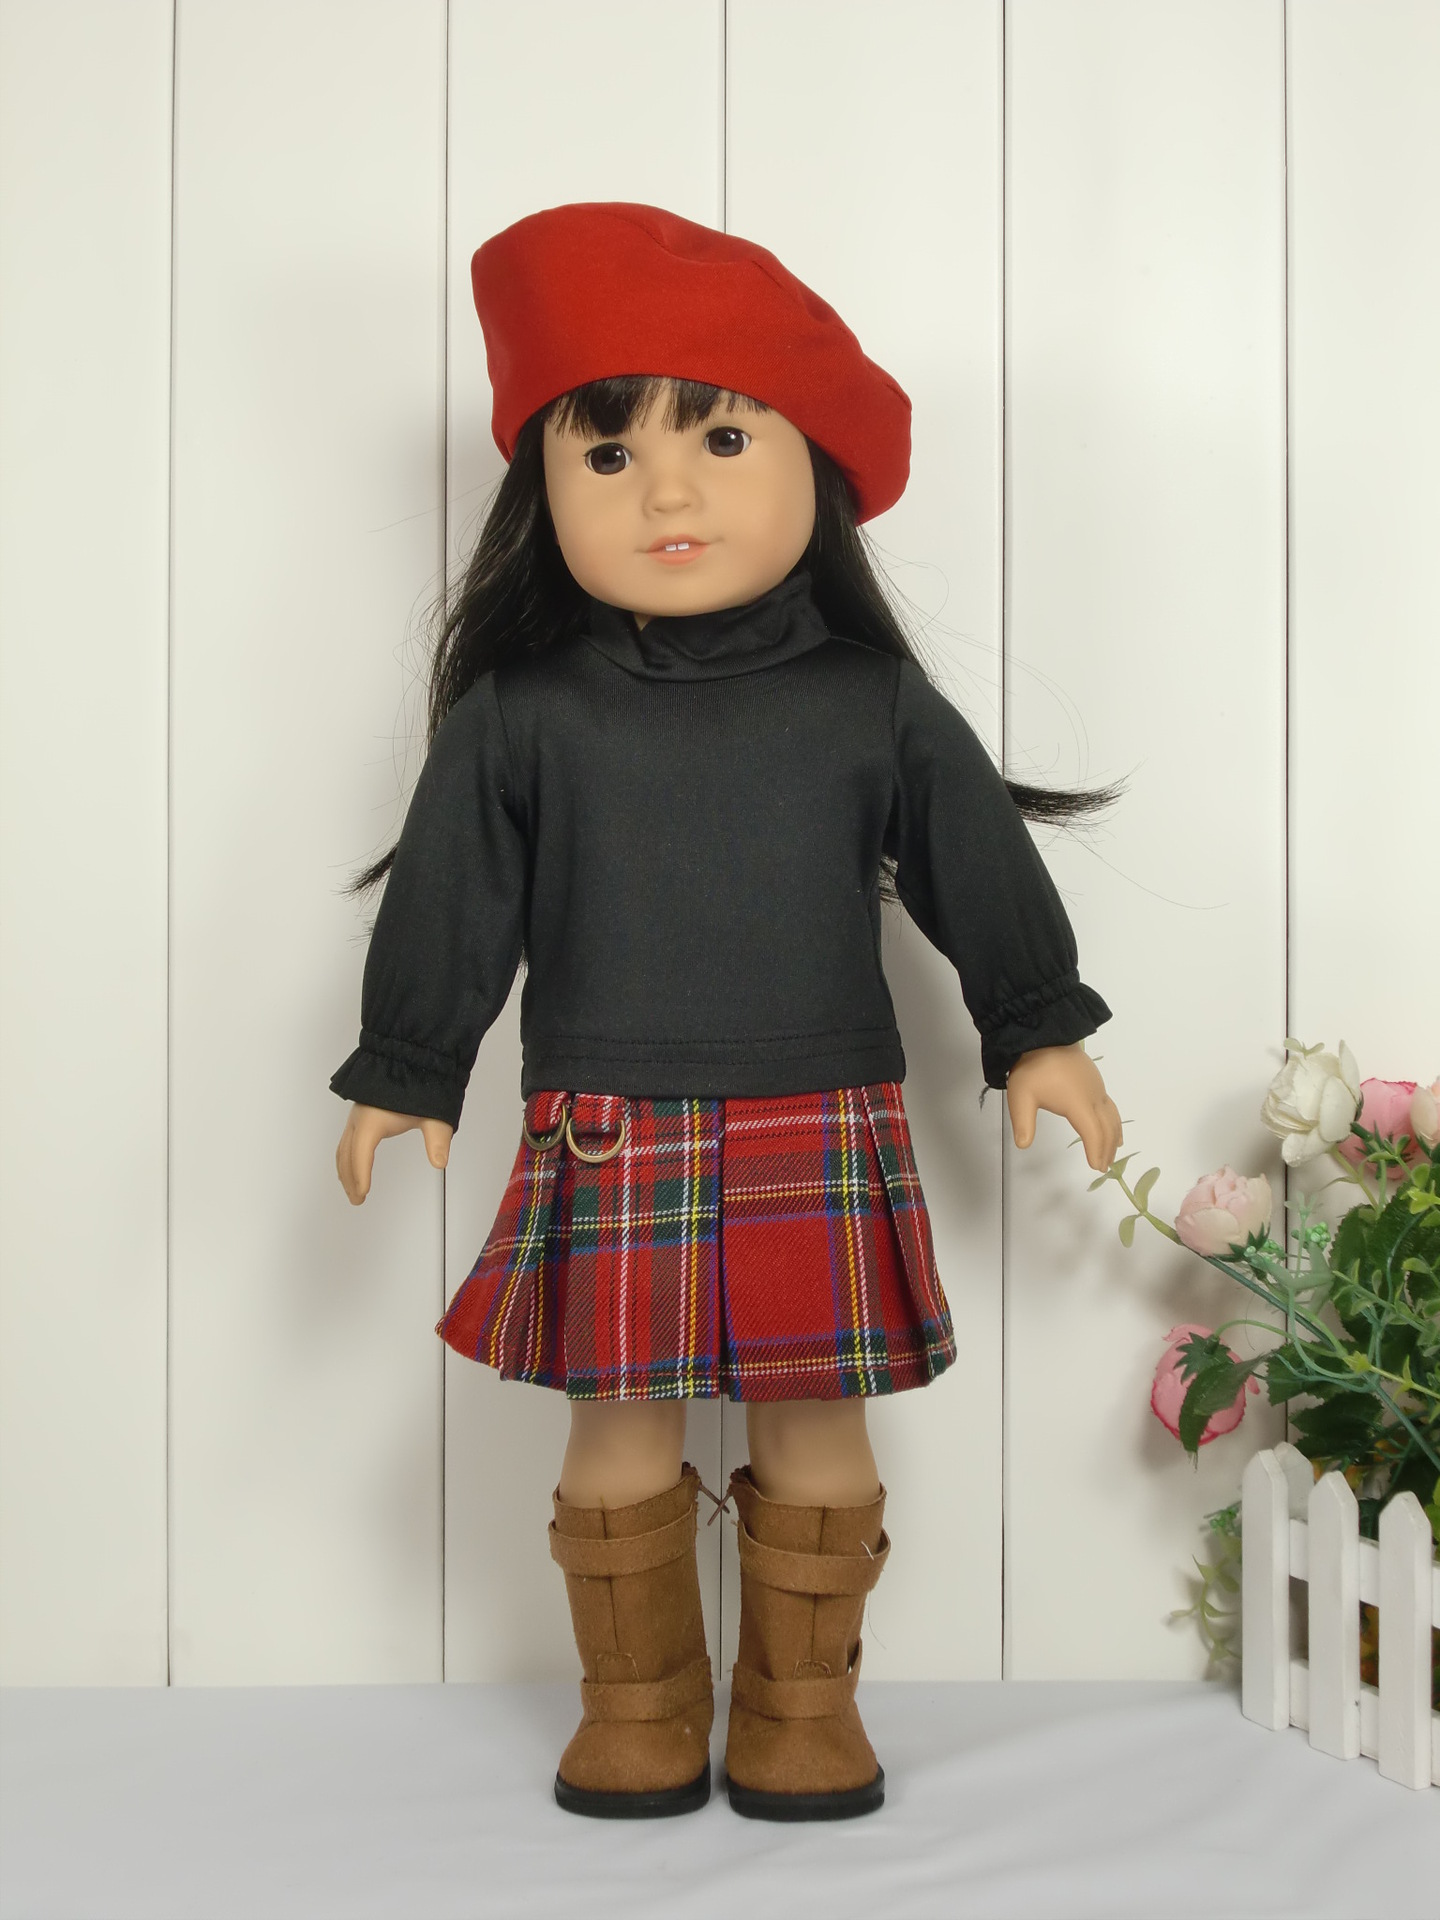 3pcs/set 1hat+1 shirt +1 Dress The Scotland Dress Suit For 18 Inch American Girl Doll 45cm Doll Accessories christmas costume dress for 18 45cm american girl doll santa dress with hat for alexander doll dress